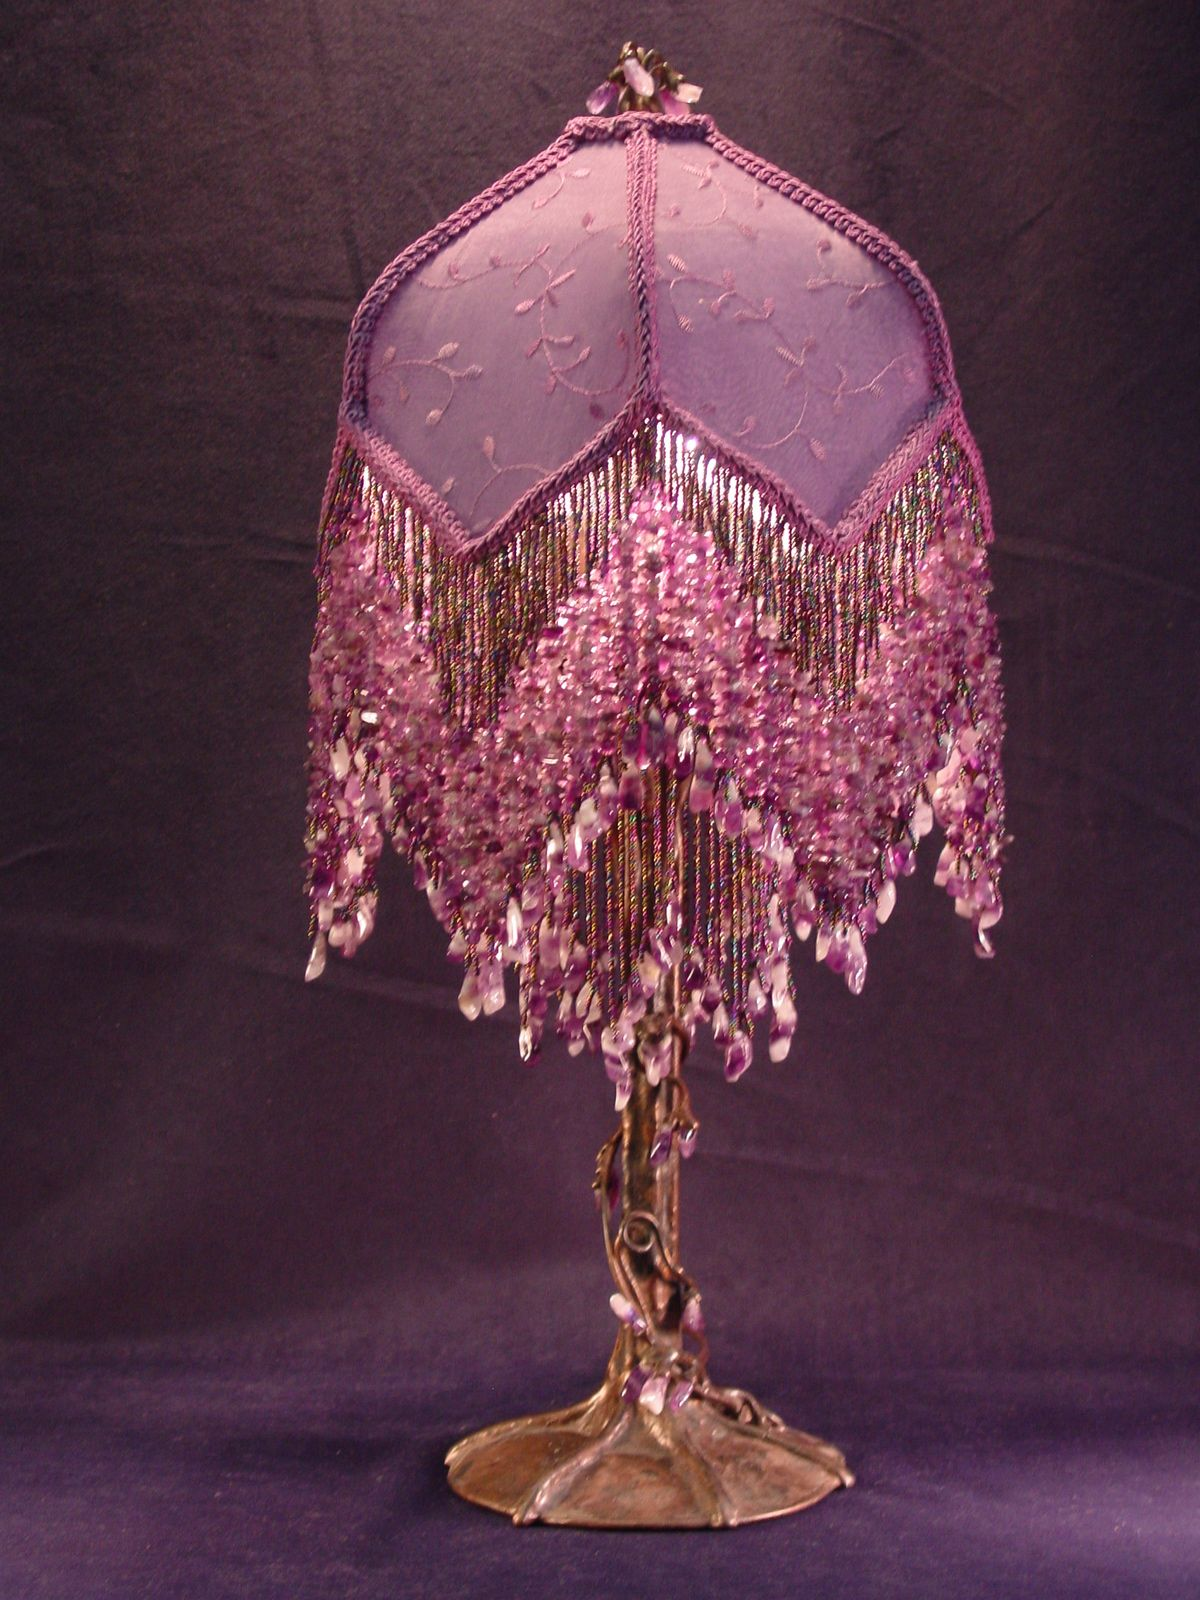 Glass Lamp Shades For Antique Floor Lamps Home Decor